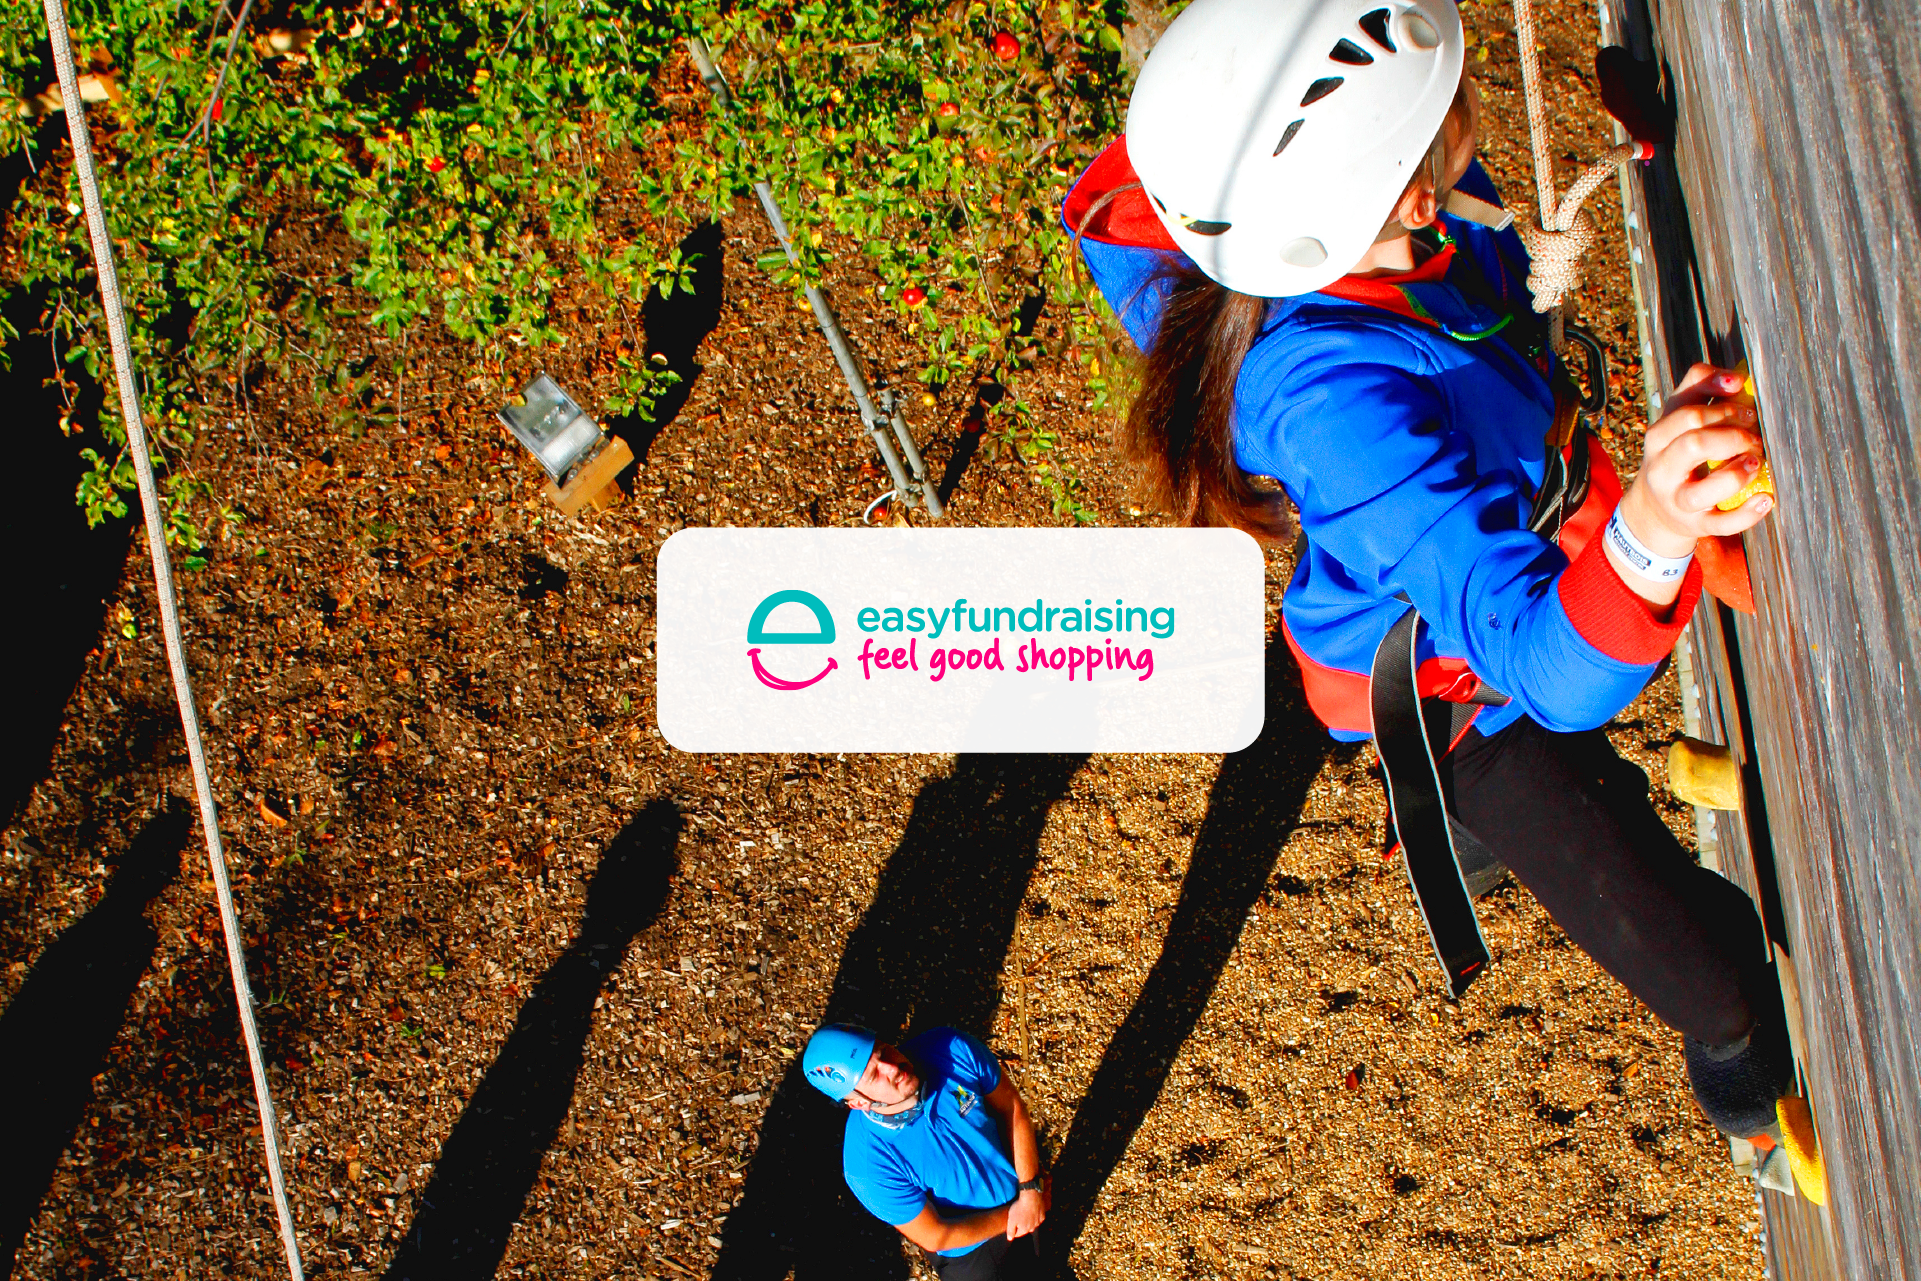 image relating to easyfundraising partners